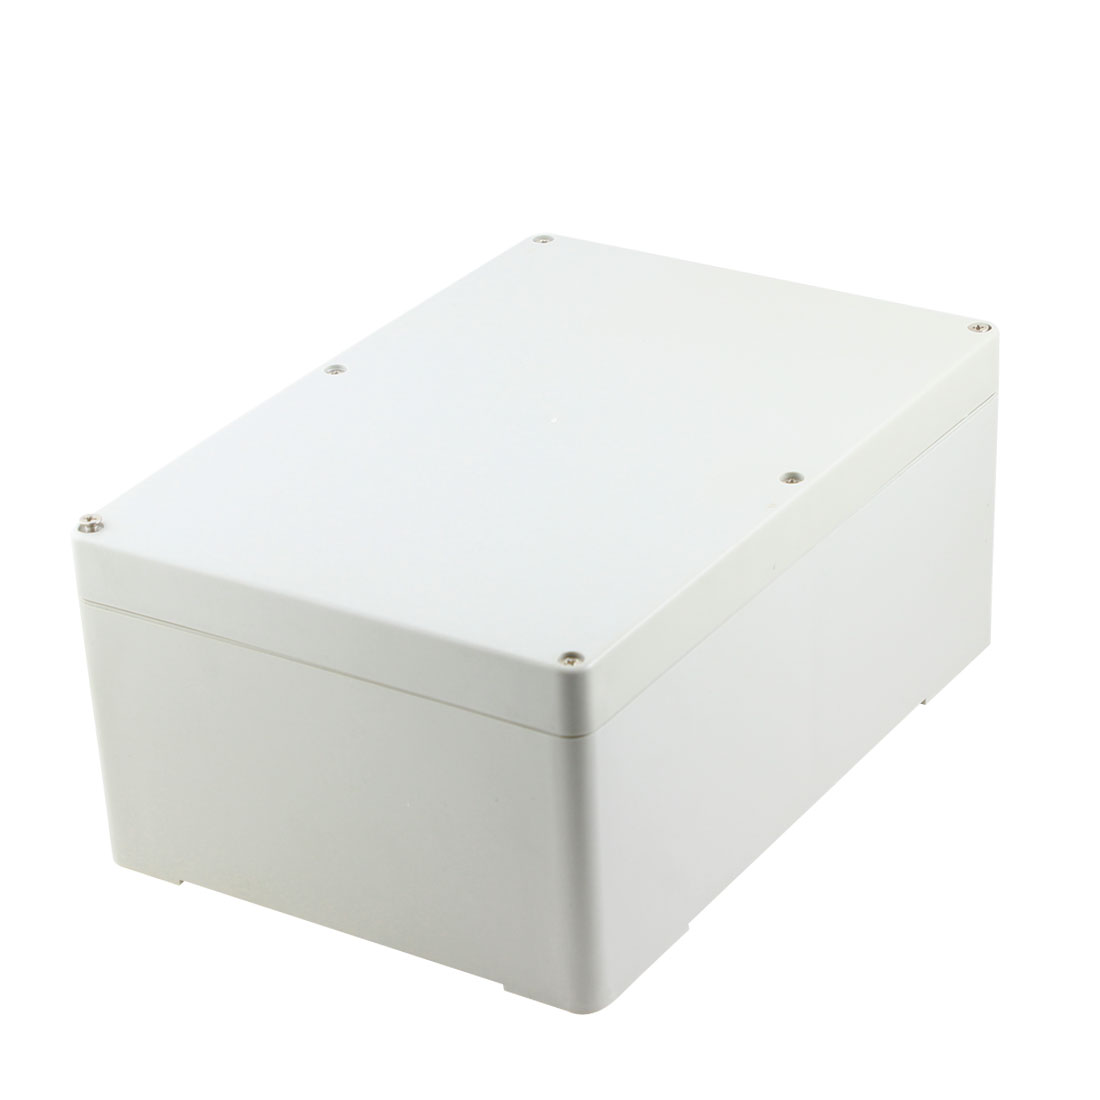 263mm x 185mm x 110mm Circuit Cable Connect Waterproof Junction Box